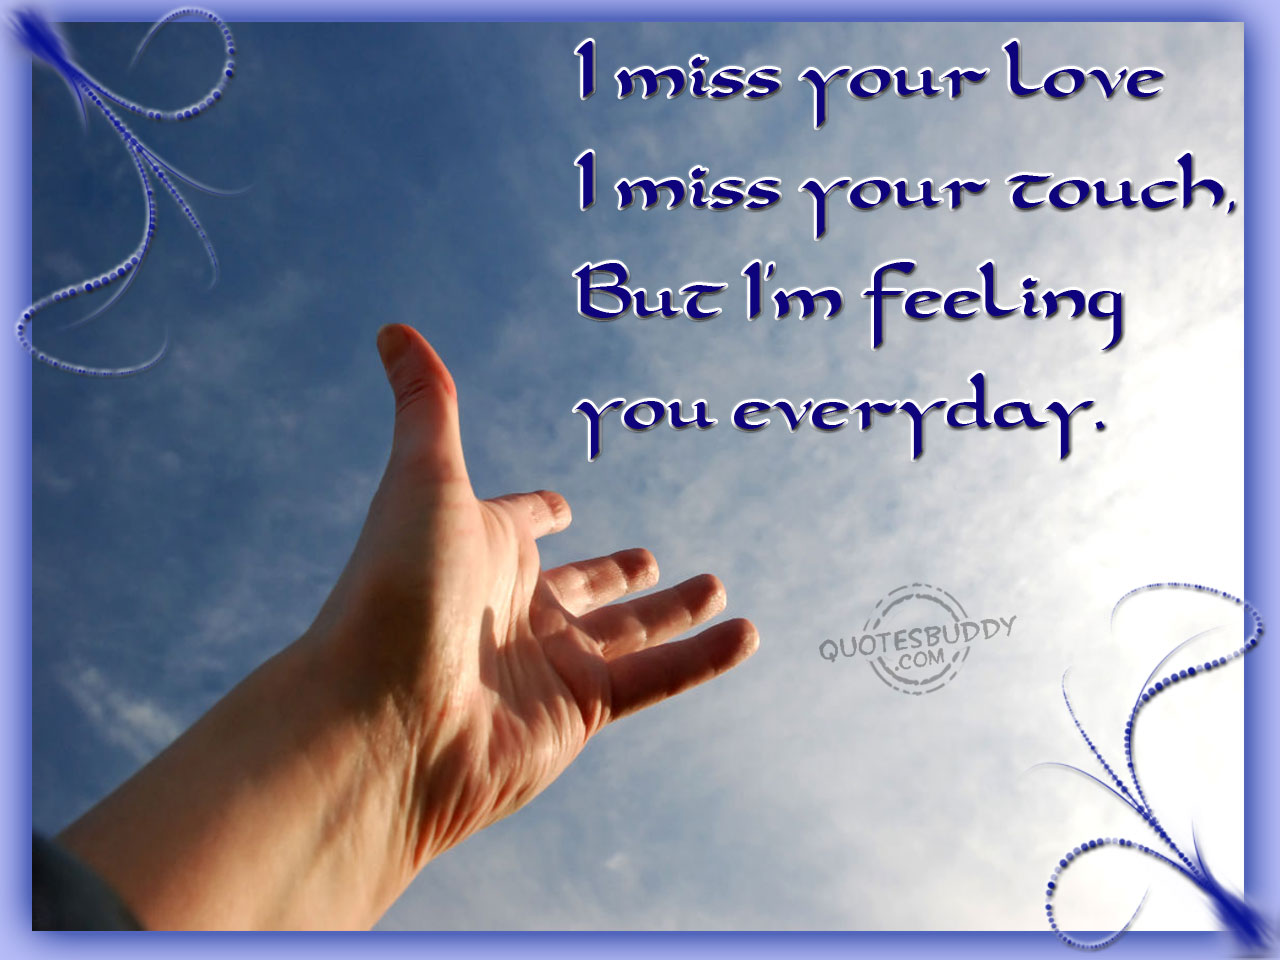 Today I Miss You Quotes. QuotesGram